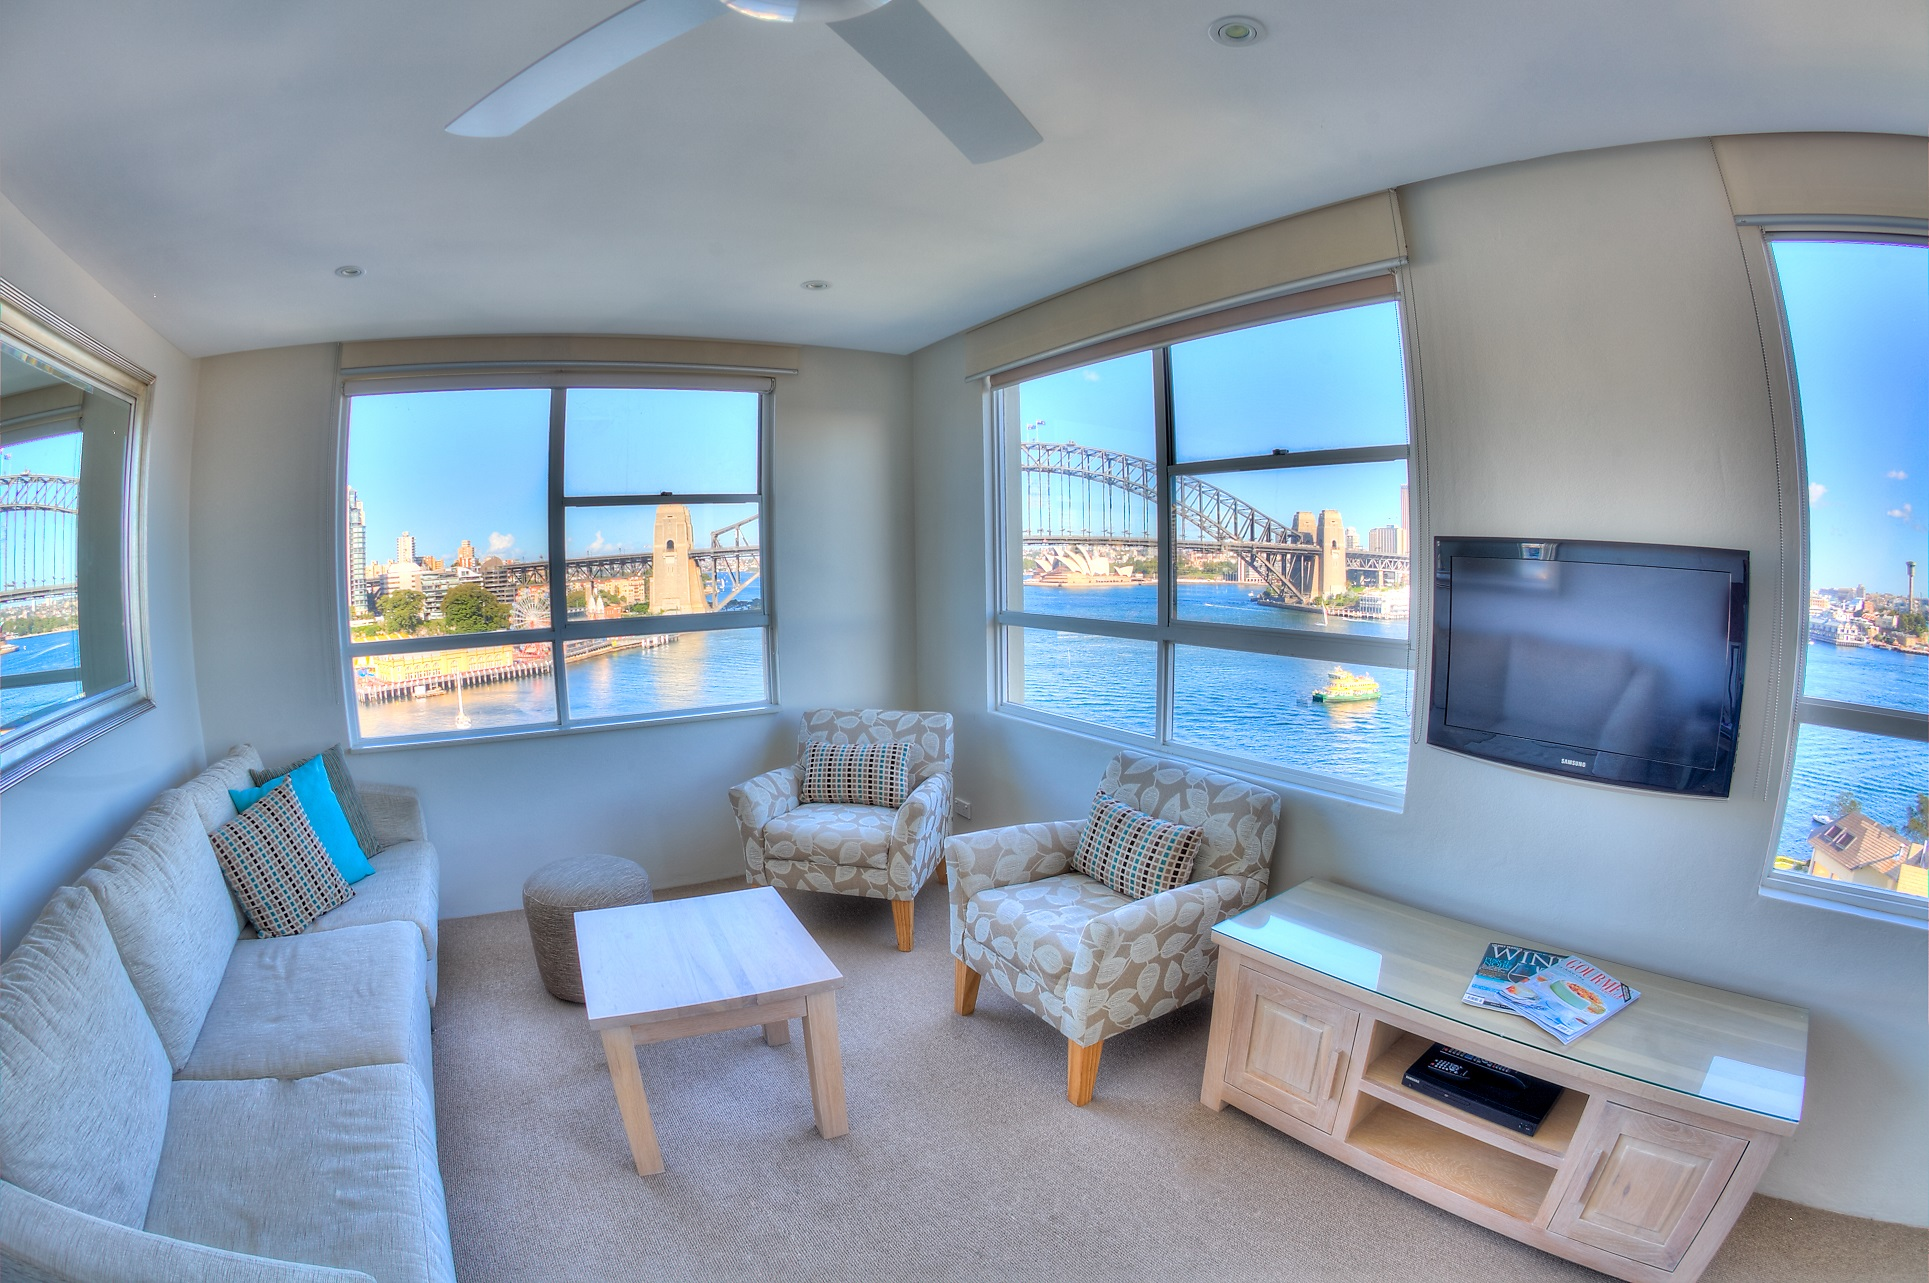 harbourside apartments apartments with a view sydney. Black Bedroom Furniture Sets. Home Design Ideas